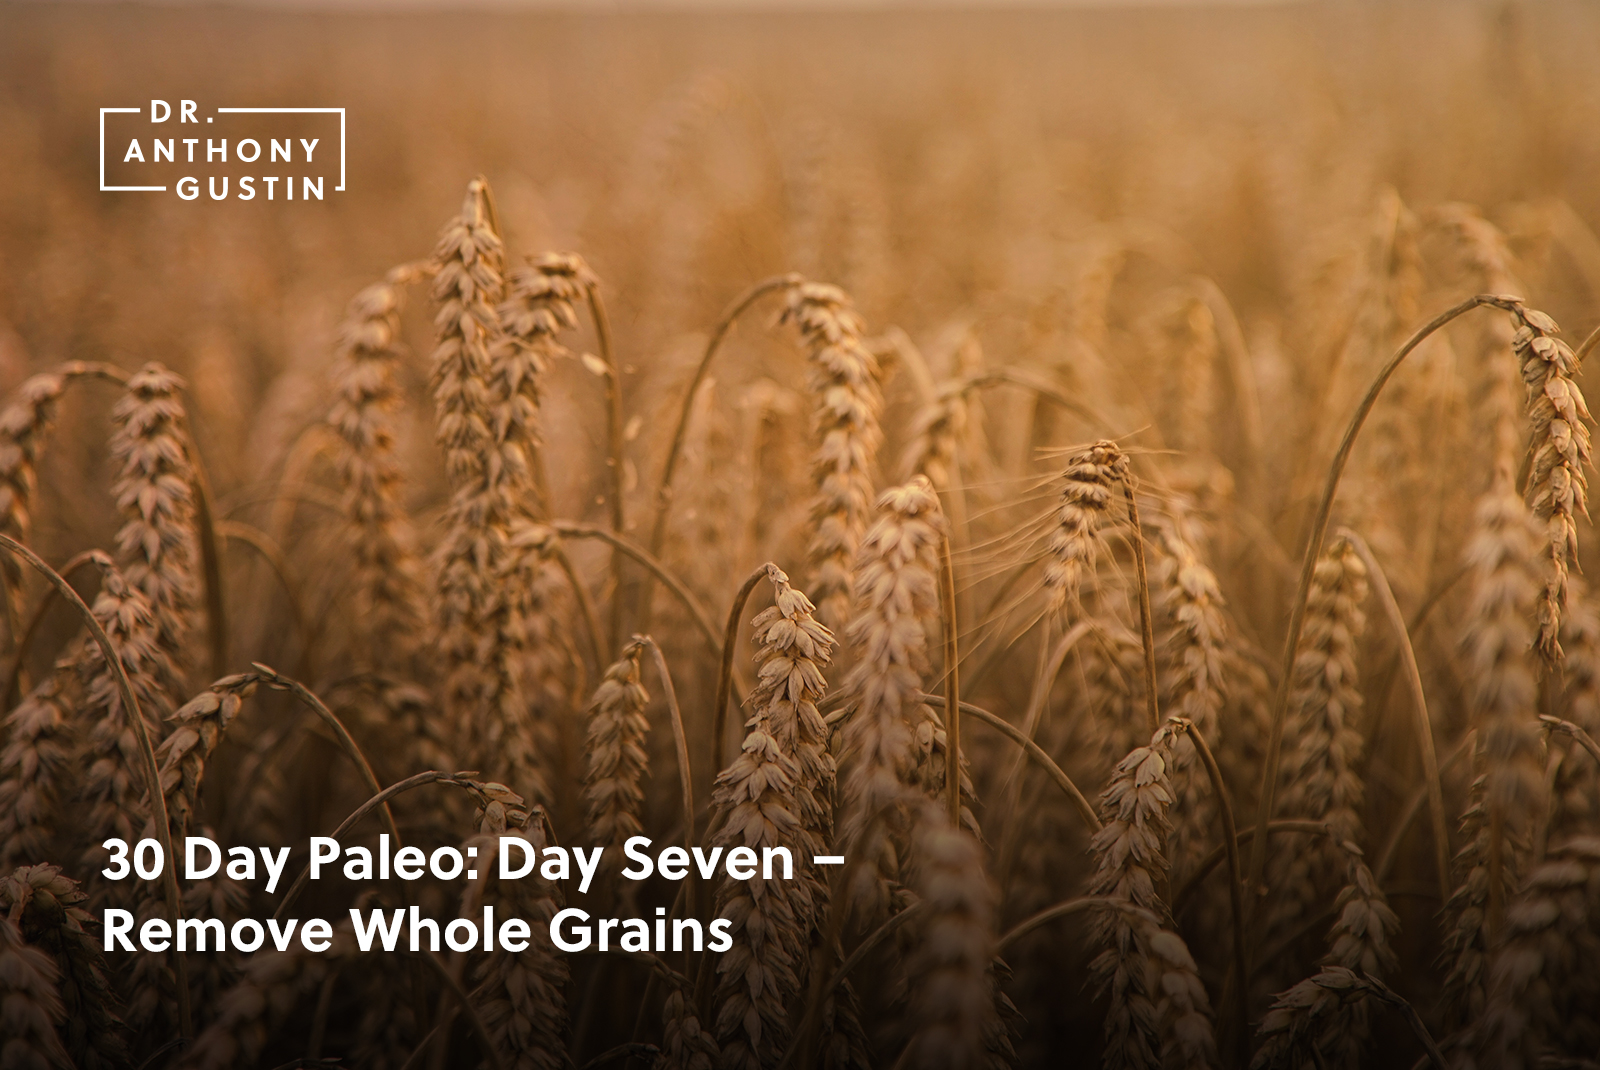 30 Day Paleo: Day Seven – Remove Whole Grains